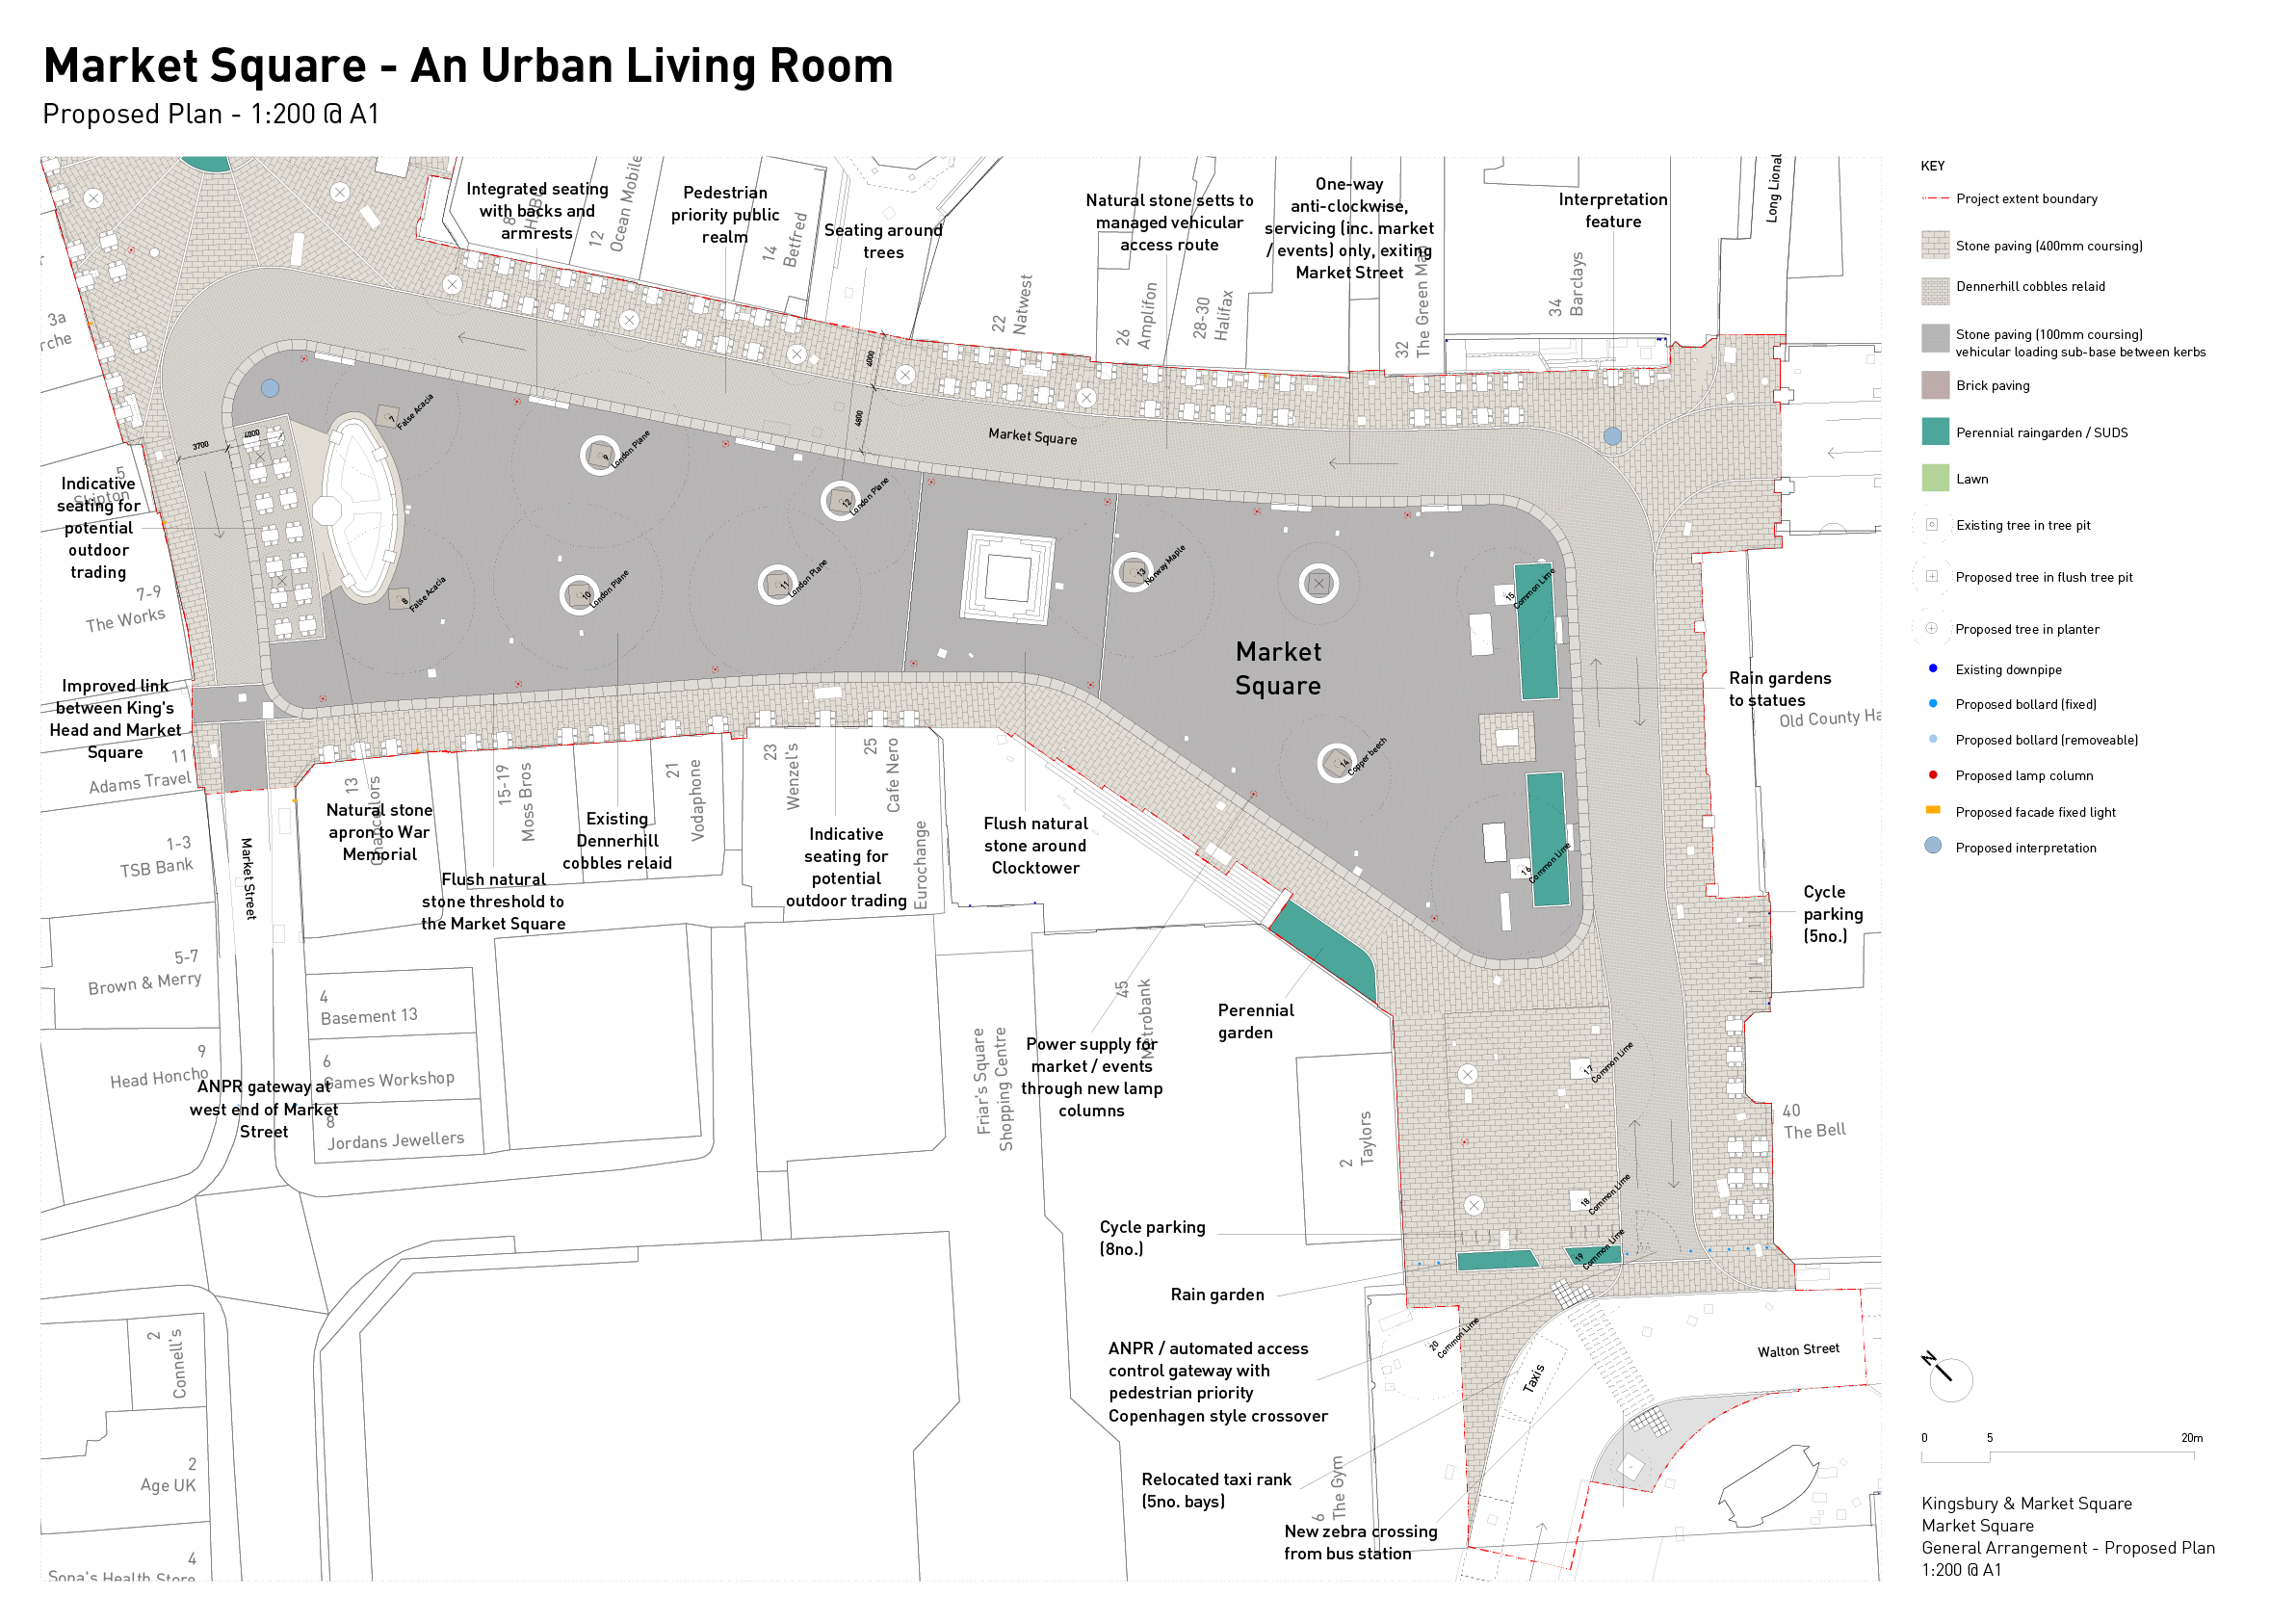 Detail plan of the proposals for Market Square